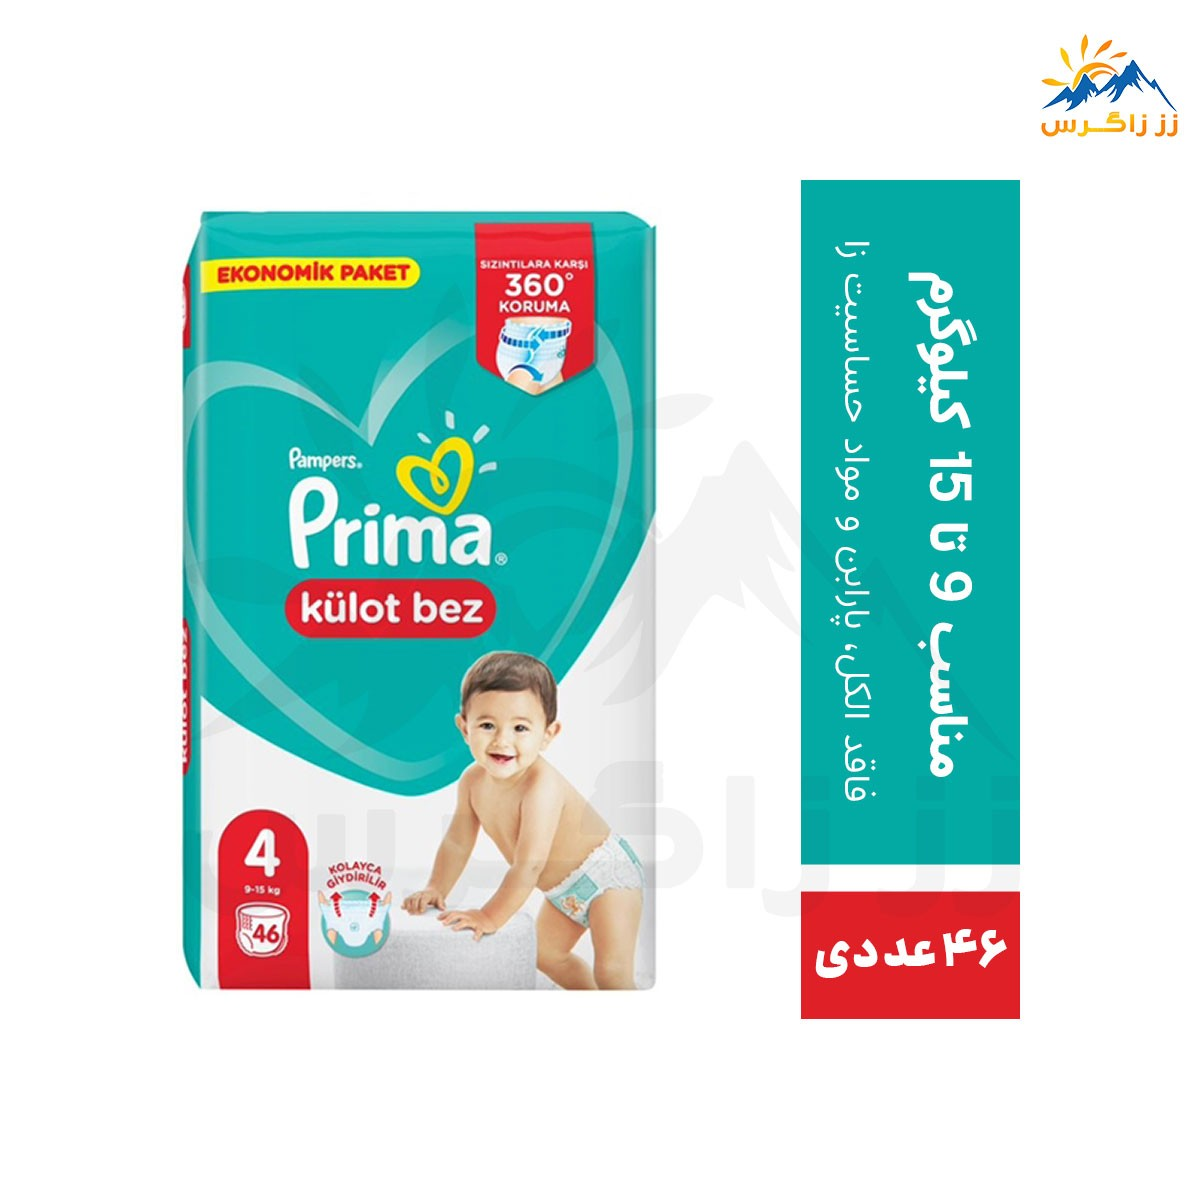 products  Prima short baby diapers, size 4, 46 packs, model Kulot bez